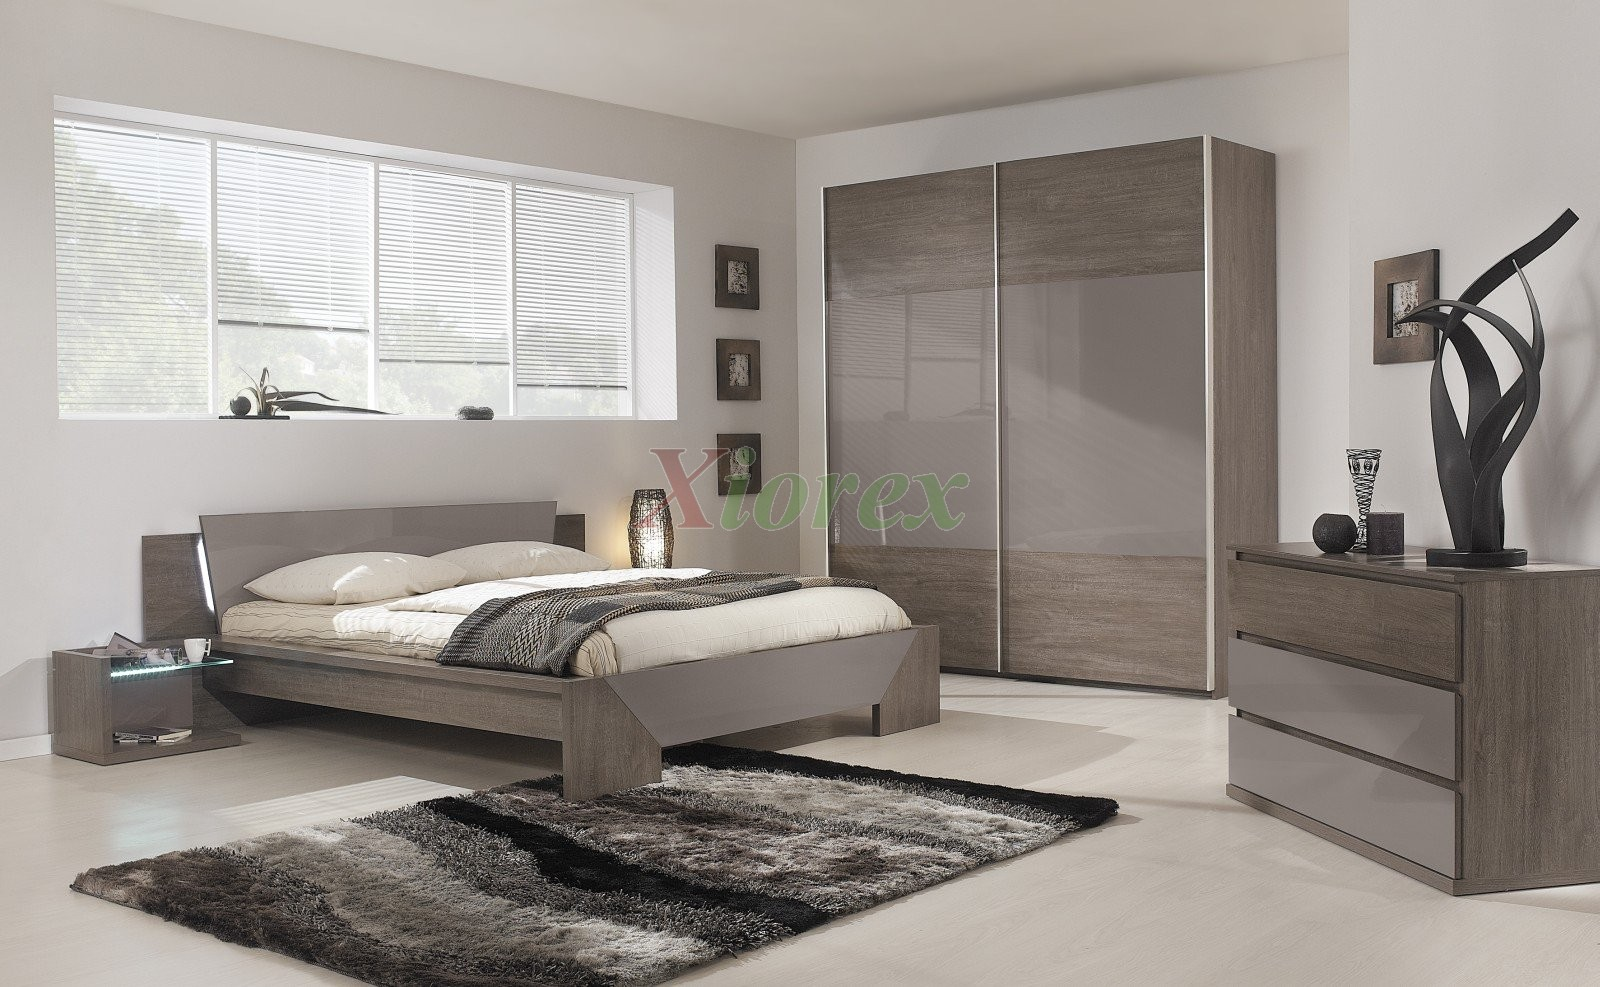 https://www.xiorex.com/media/catalog/product/cache/1/image/ce917ae61abb794fb66945dcc312e713/m/o/modern_bed_gami_trapeze_bed_set_modern_bedroom_set_ash-grey_oak_xiorex.jpg